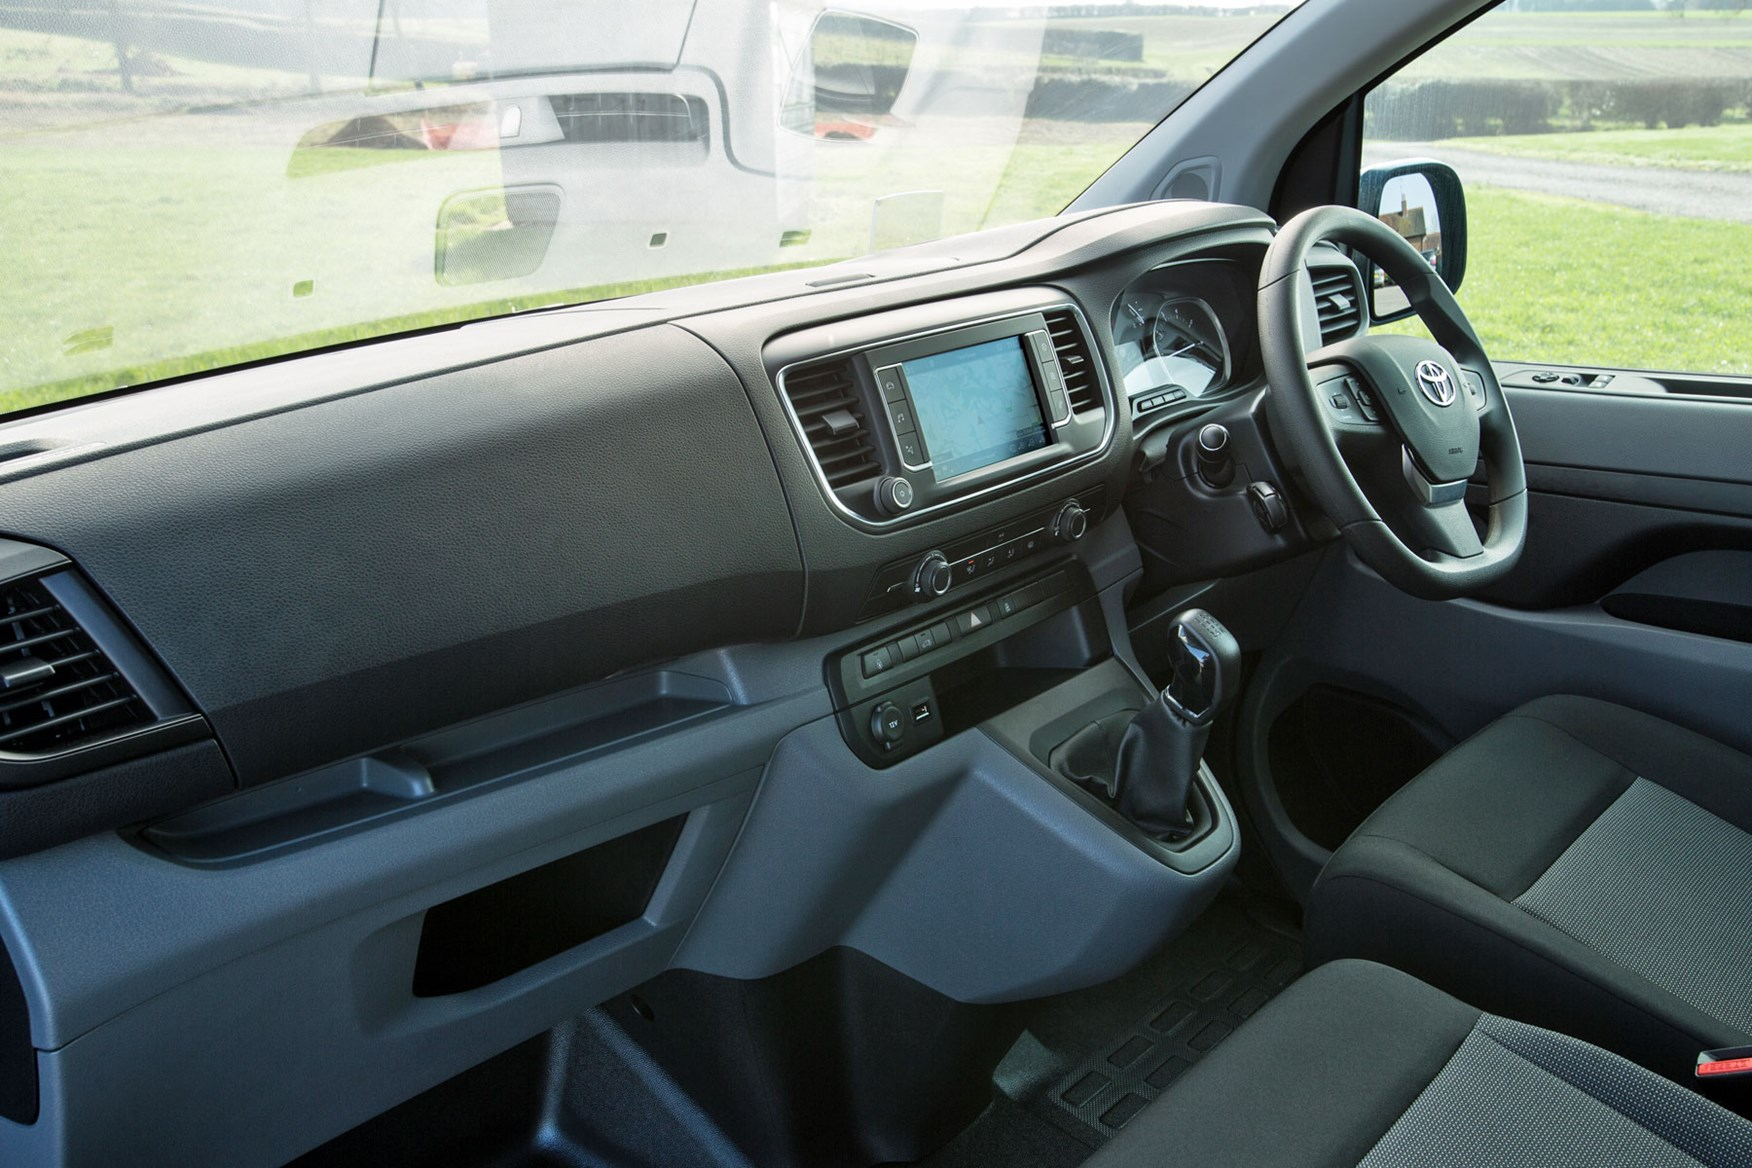 Toyota Proace review - cab interior showing whole dashboard from passenger side, 2018